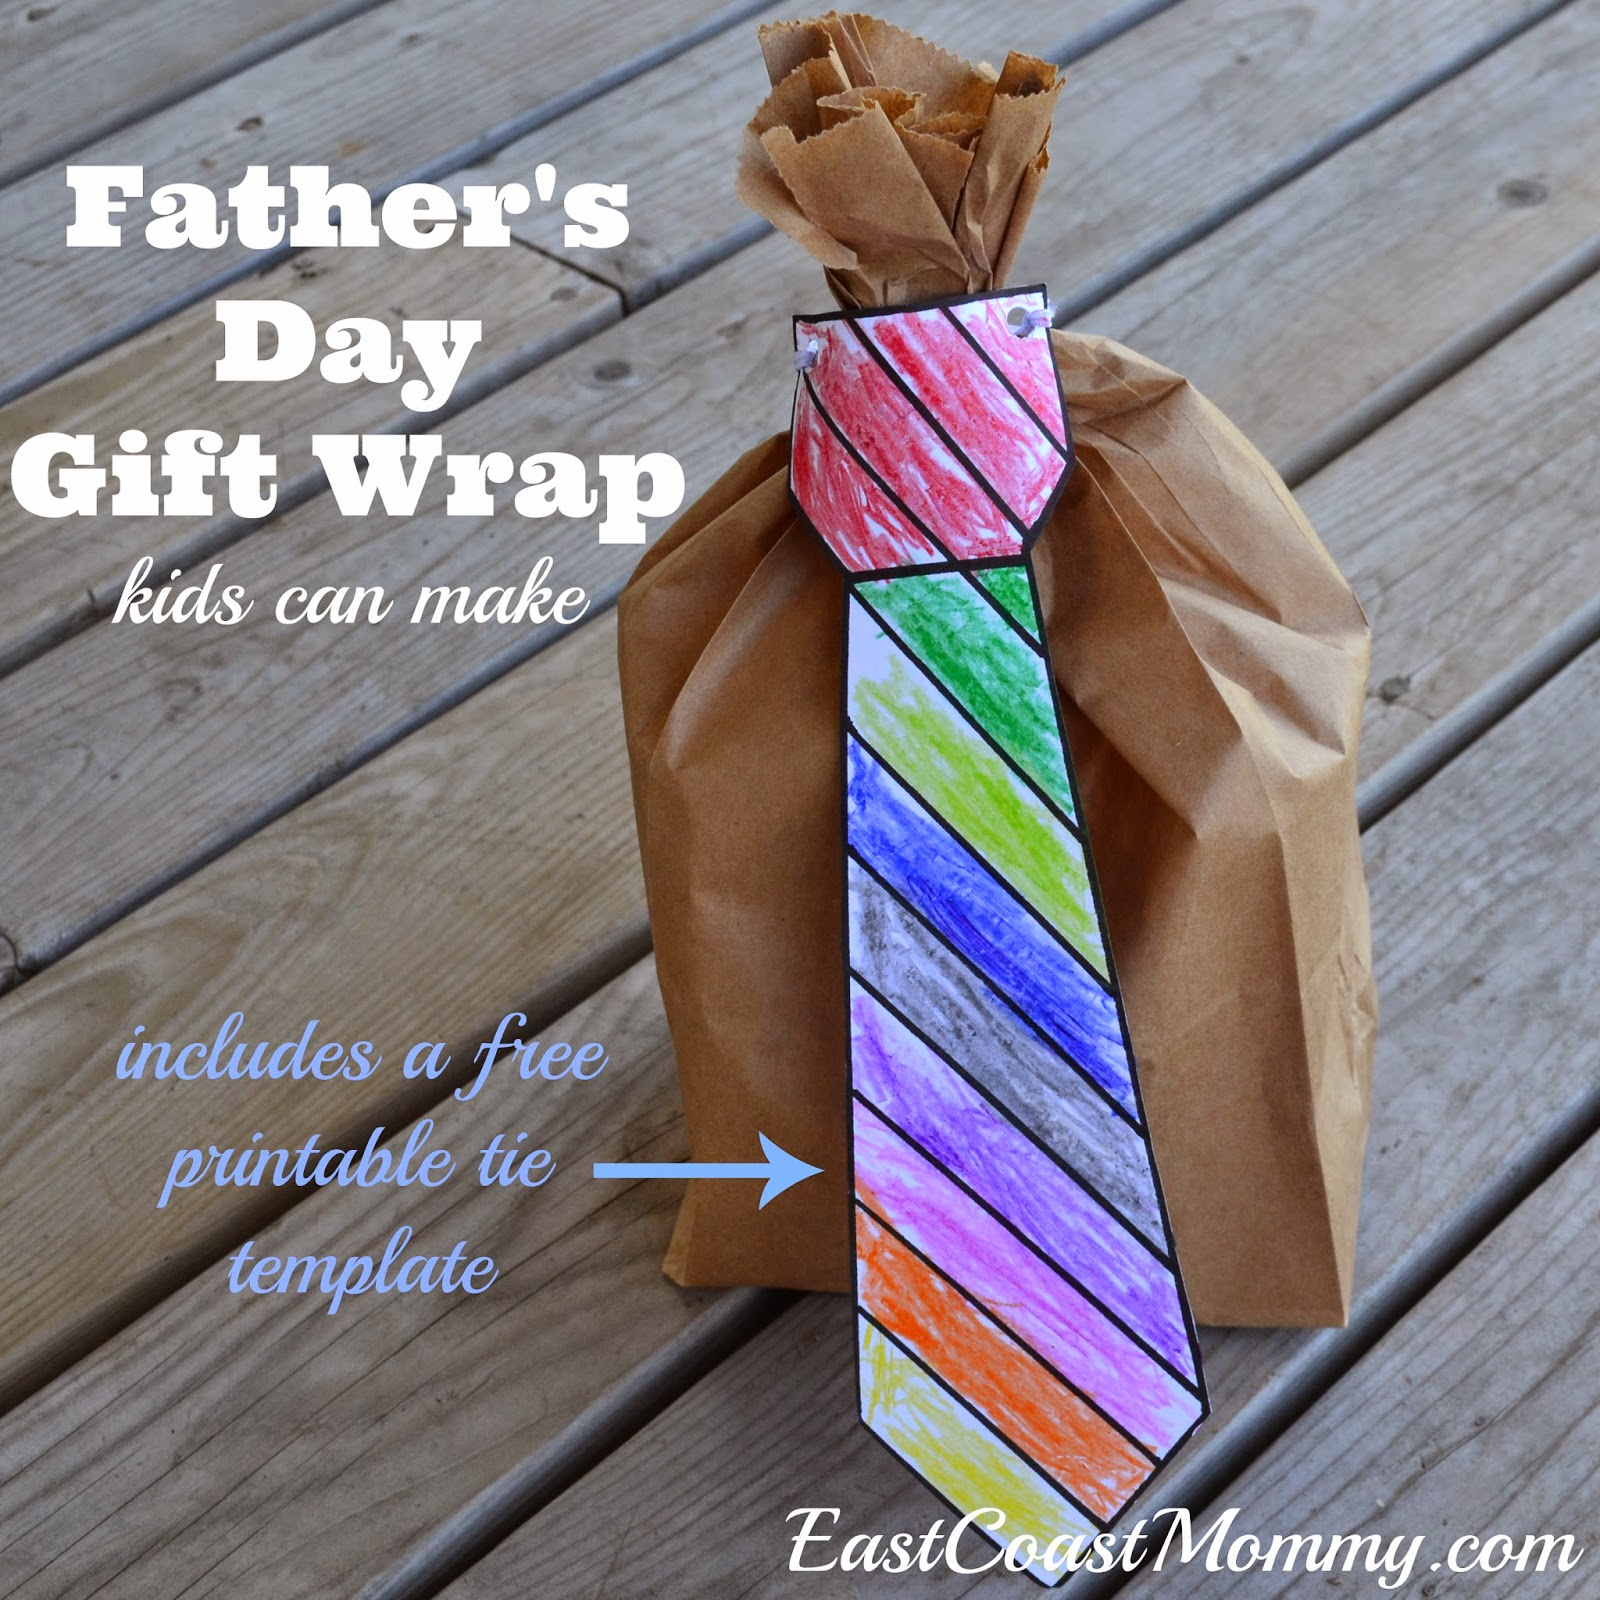 East Coast Mommy: 6 Father's Day Gifts {kids Can Make}